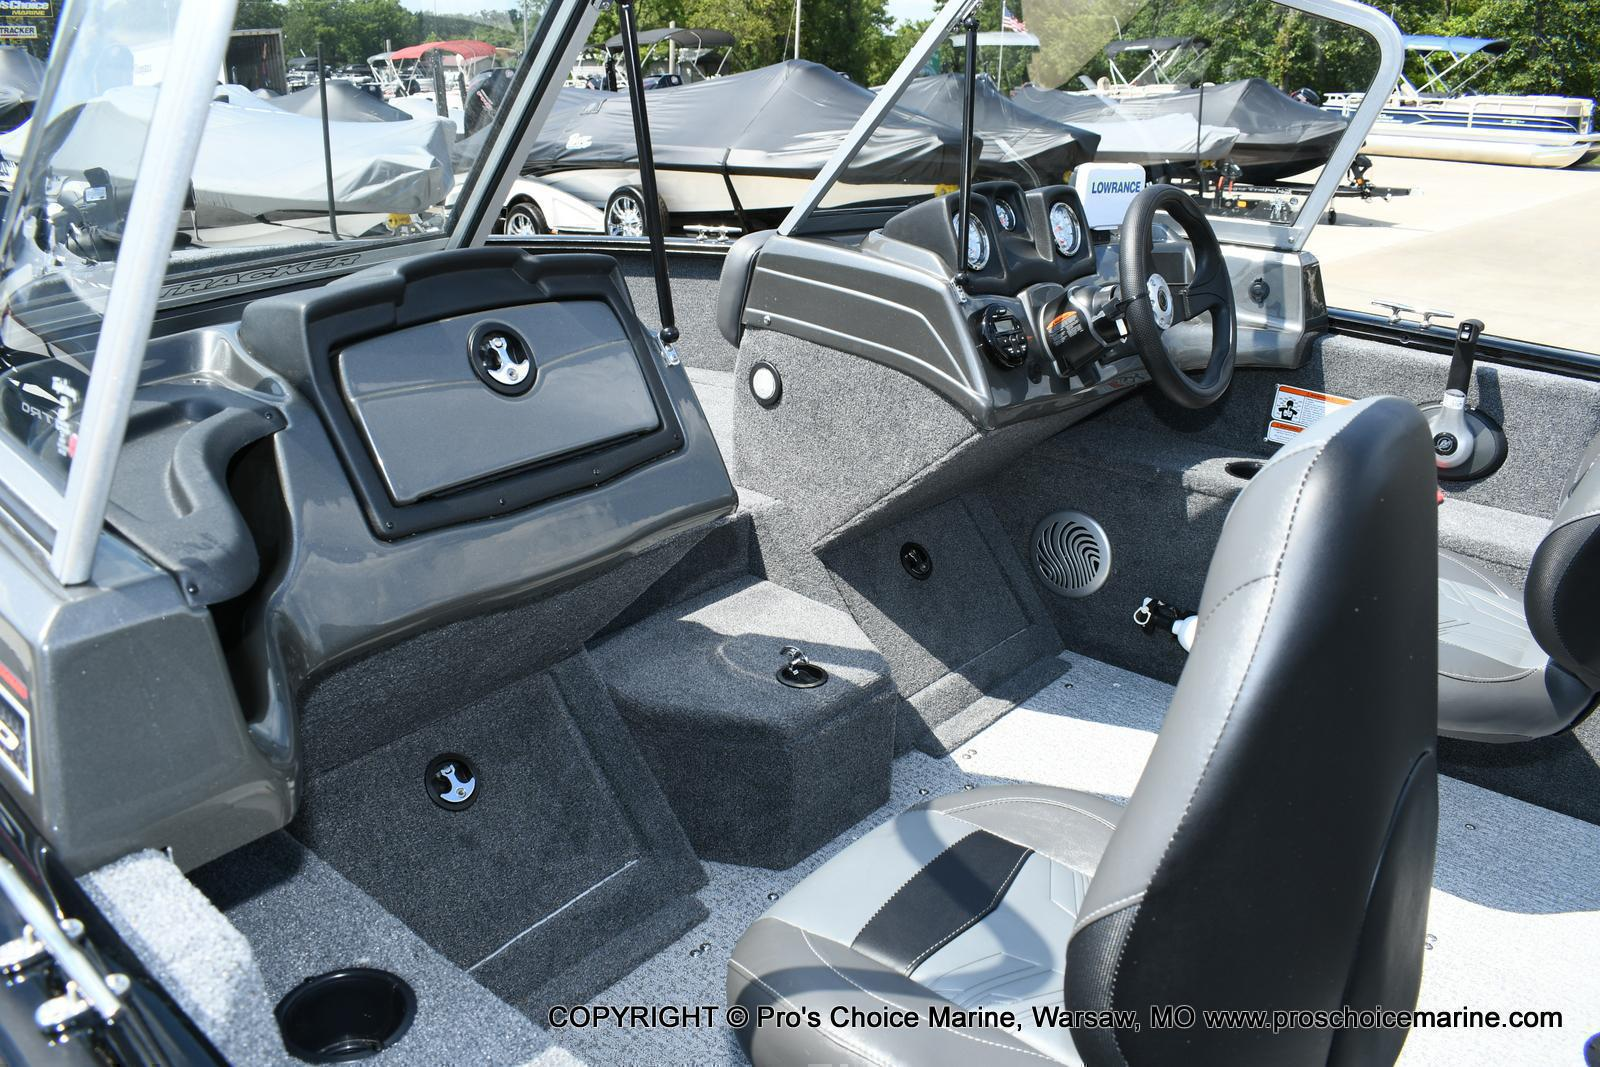 2020 Tracker Boats boat for sale, model of the boat is Pro Guide V-175 Combo & Image # 7 of 50